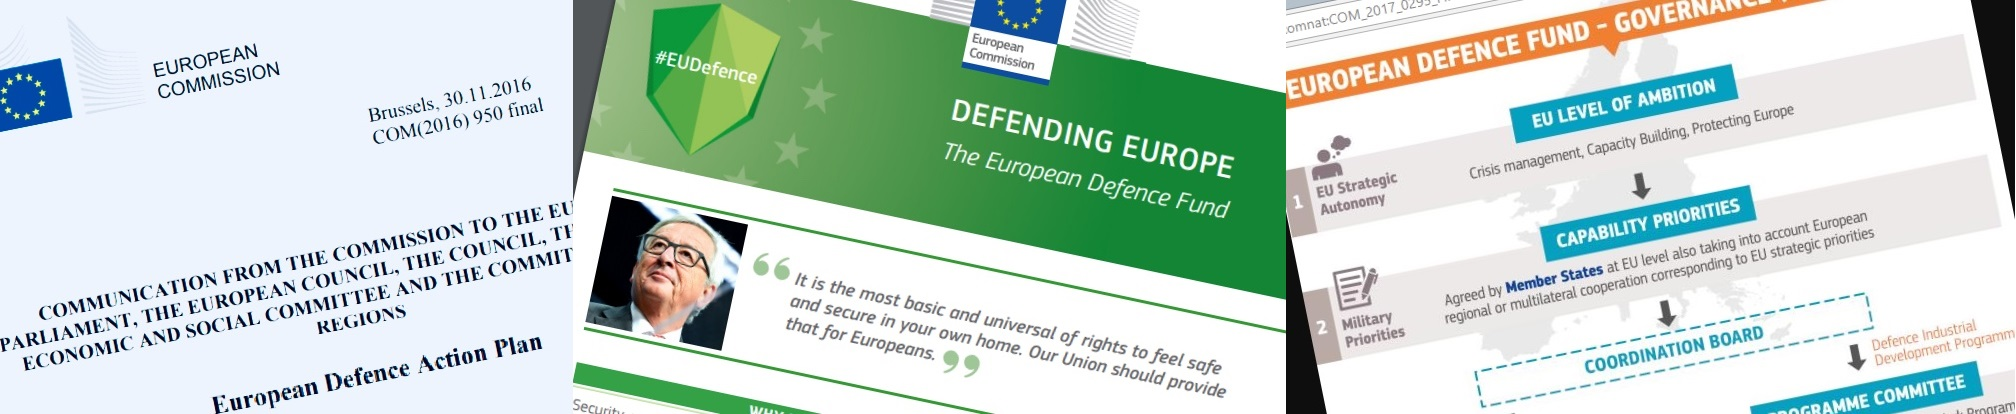 Risks arising from UK involvement in EU Defence Union